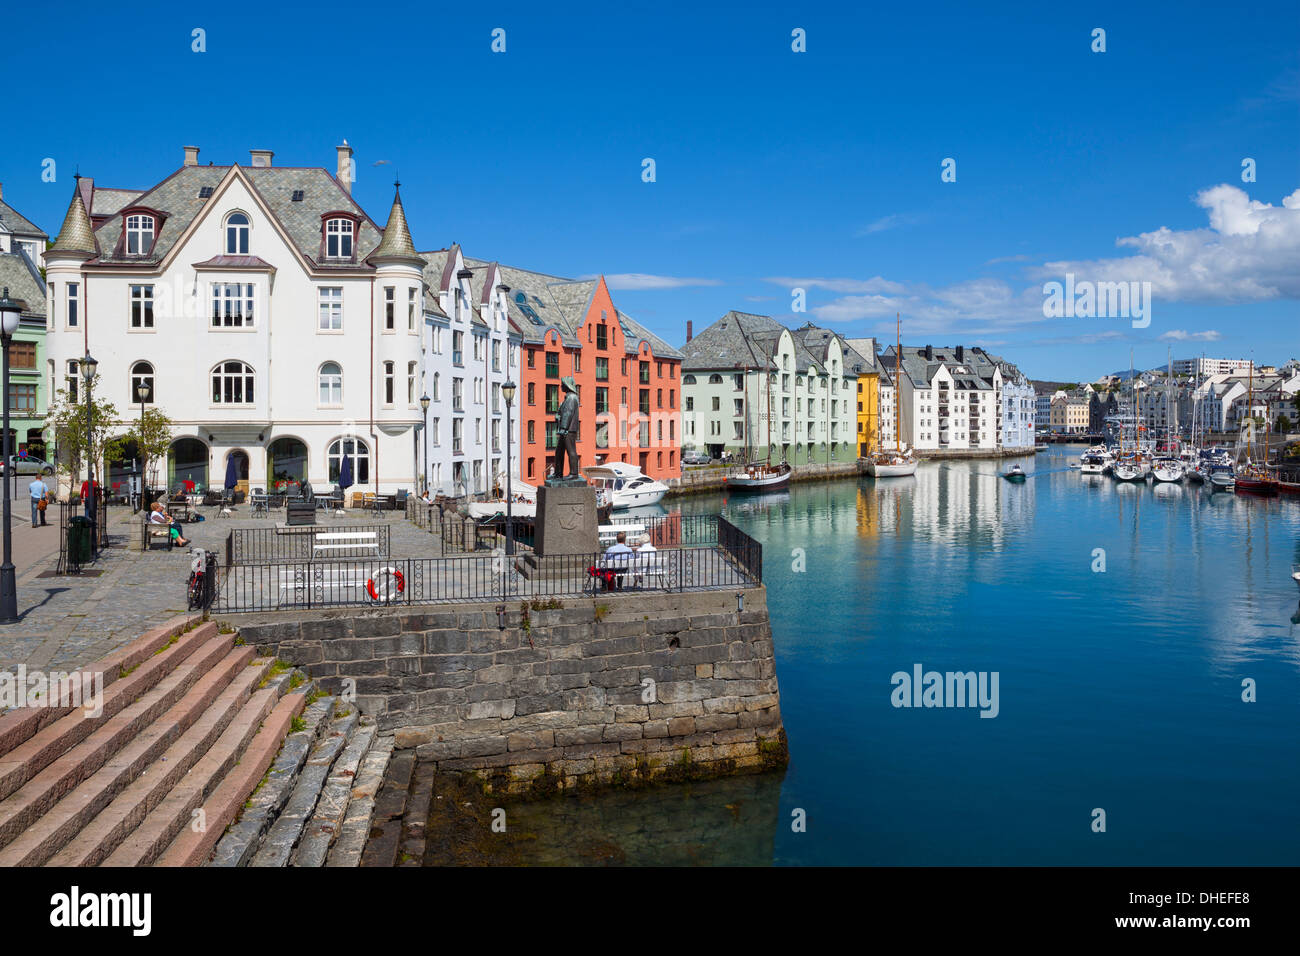 Old fishing warehouses in harbor, Alesund, Sunnmore, More og Romsdal, Norway, Scandinavia, Europe - Stock Image